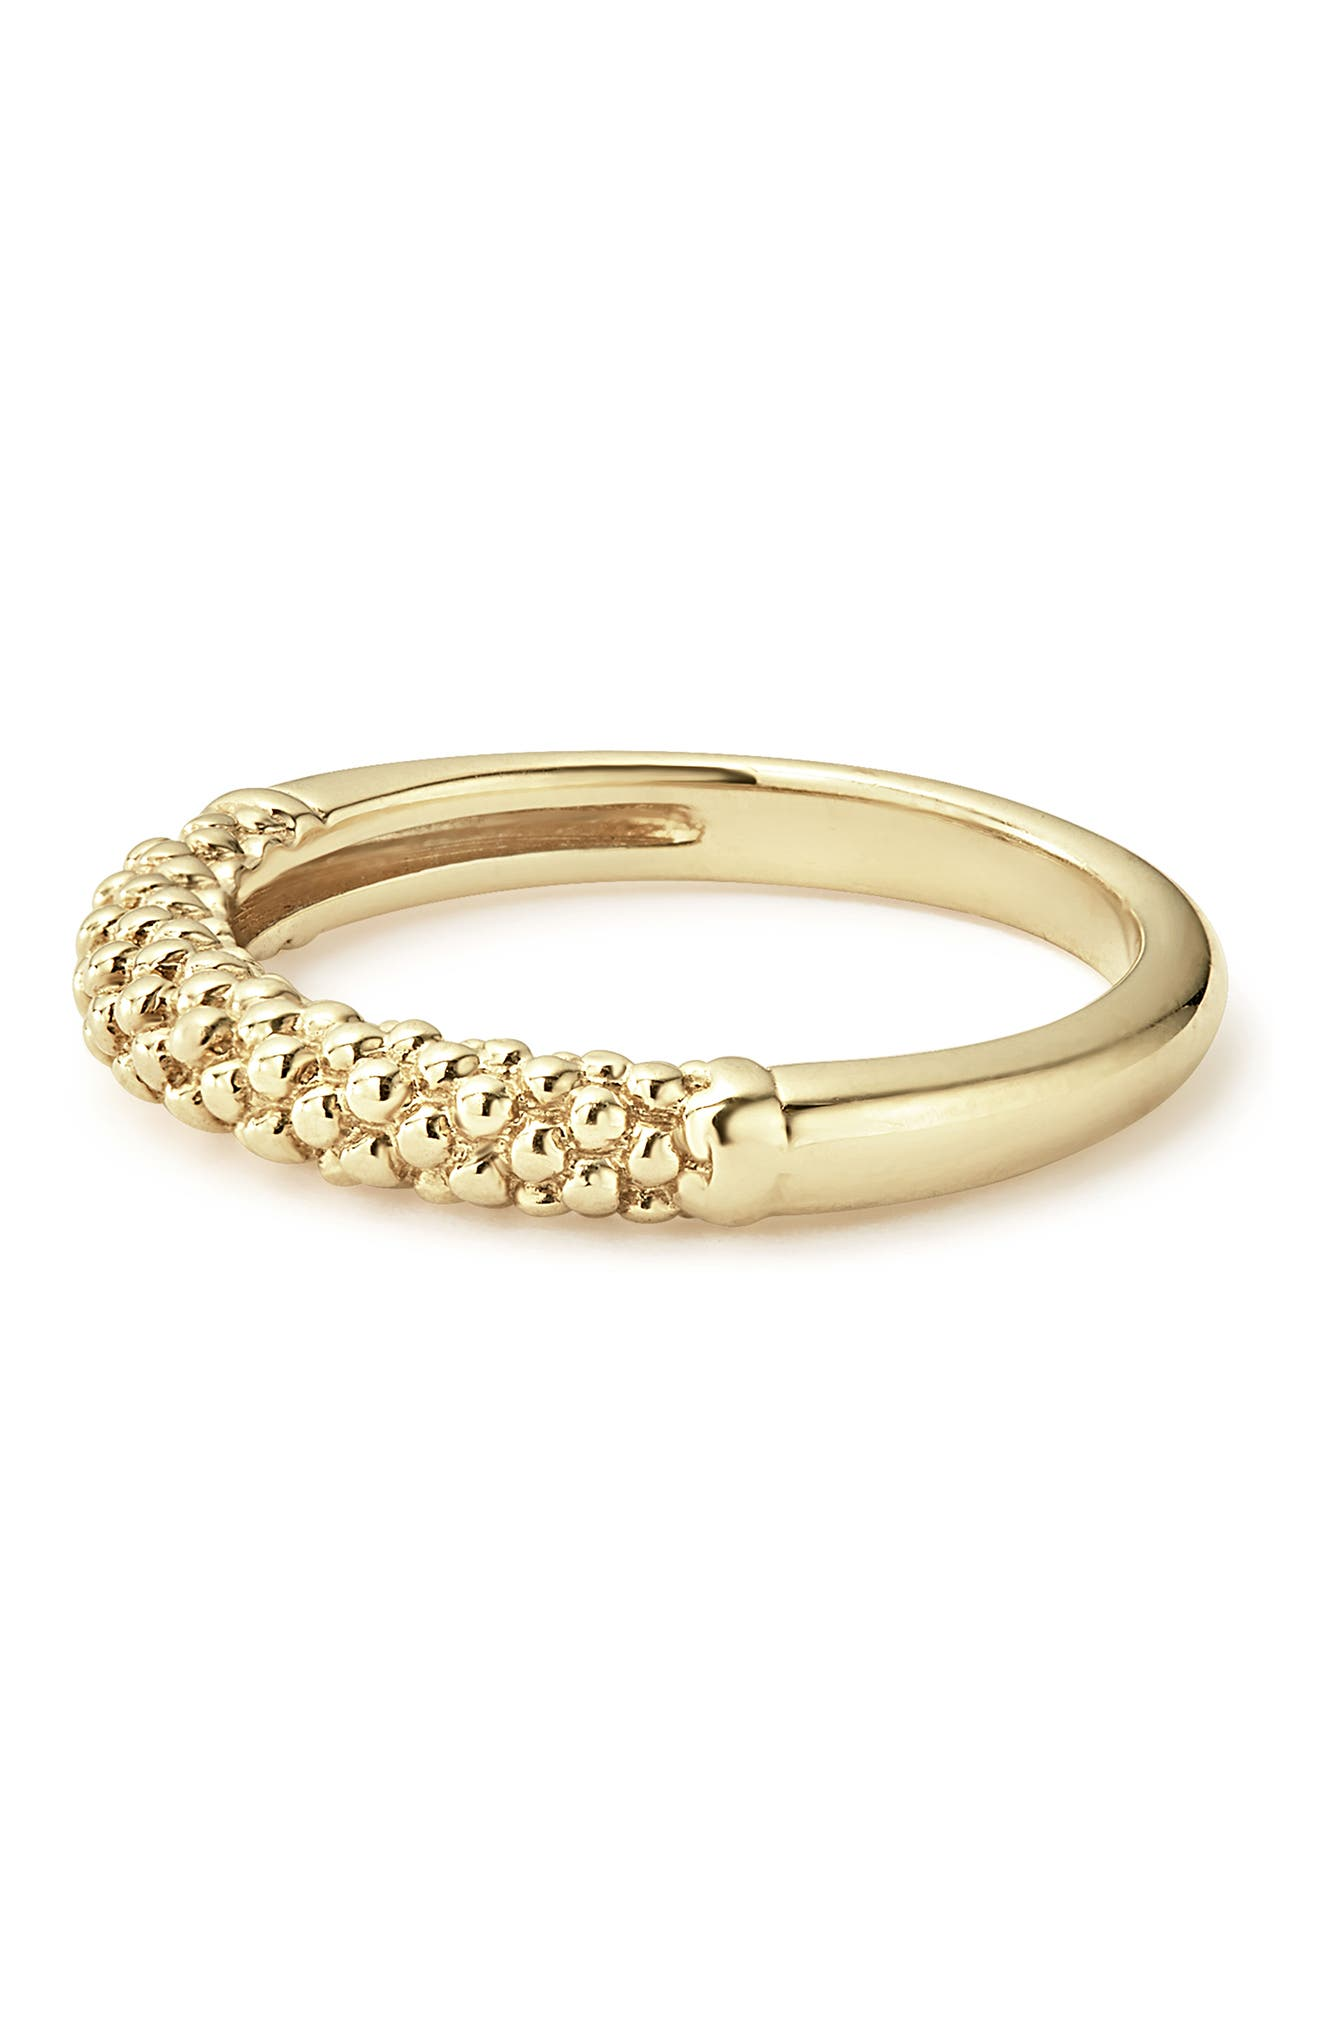 Caviar Band Ring,                             Alternate thumbnail 2, color,                             GOLD